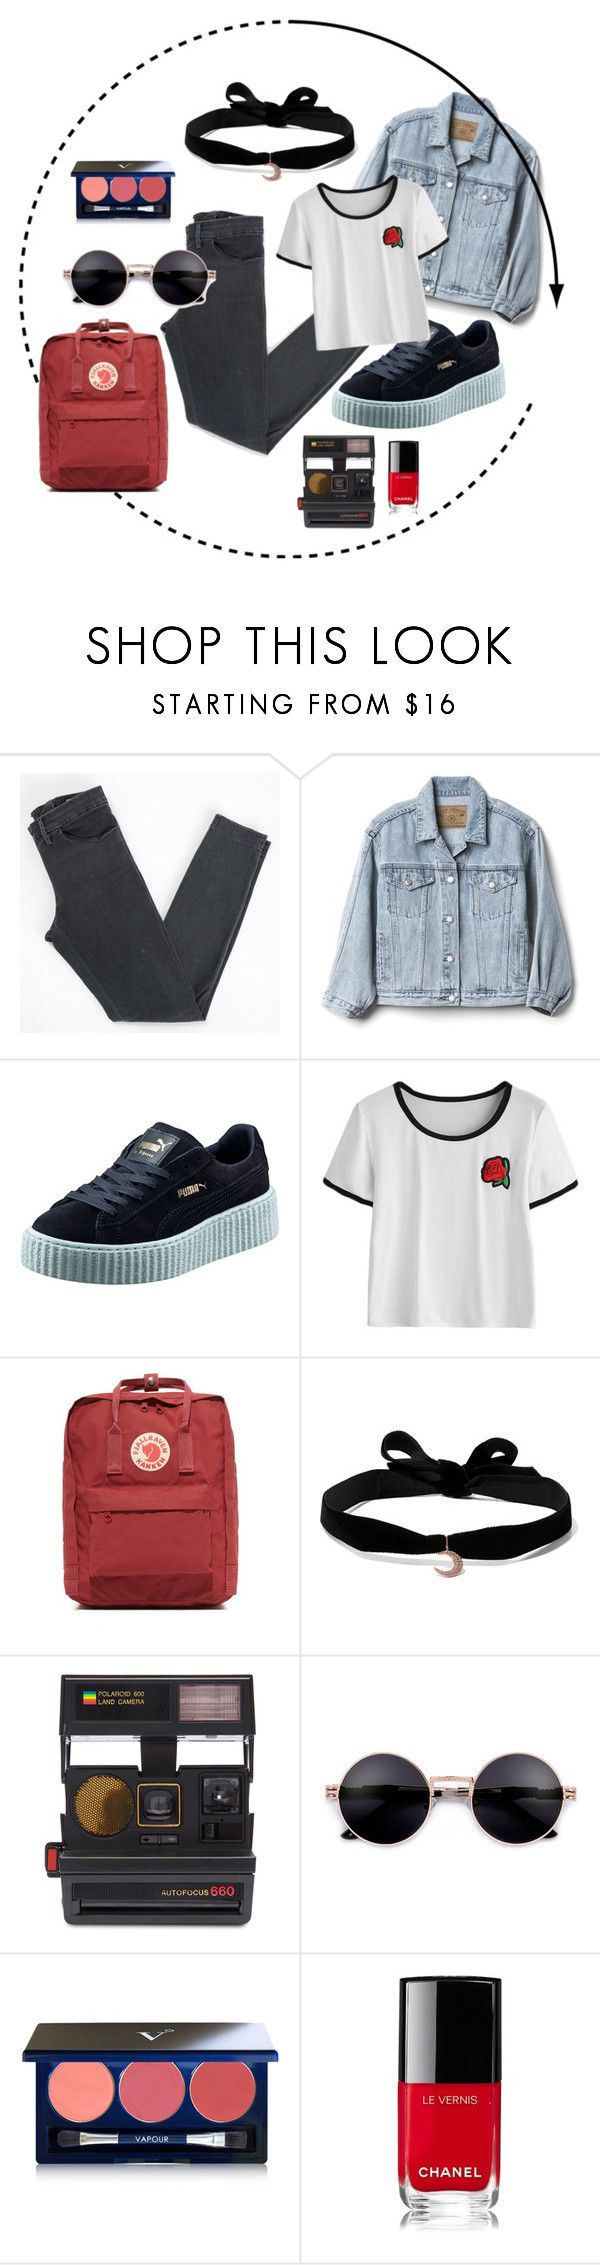 """Sin título #247"" by camilazeballo on Polyvore featuring moda, Acne Studios, Gap, Puma, Fjällräven, Aamaya by Priyanka, Impossible Project, Vapour y Chanel"